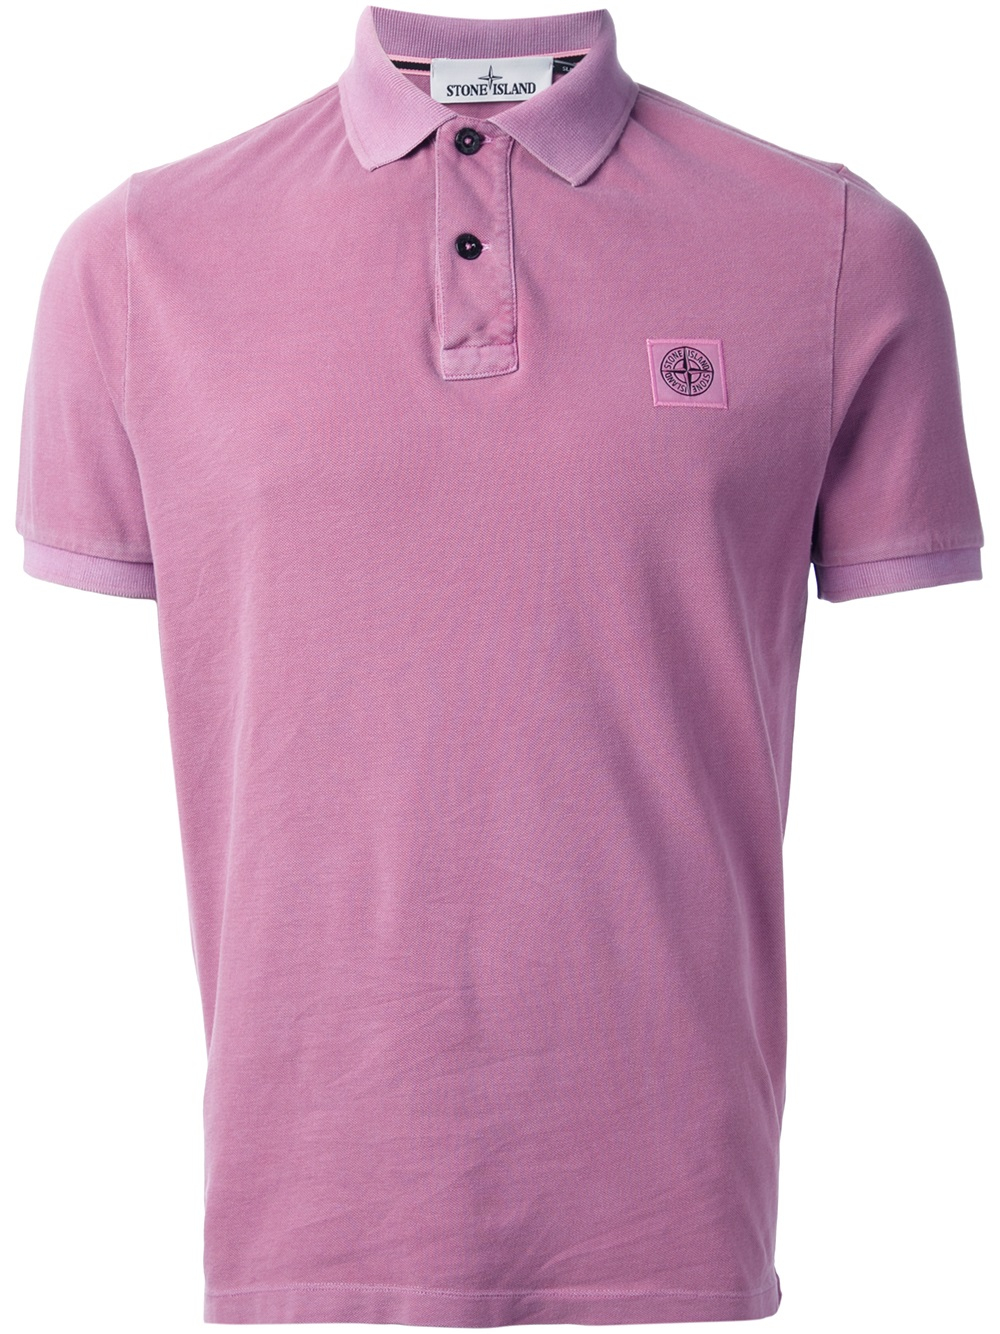 Lyst Stone Island Classic Polo Shirt In Pink For Men